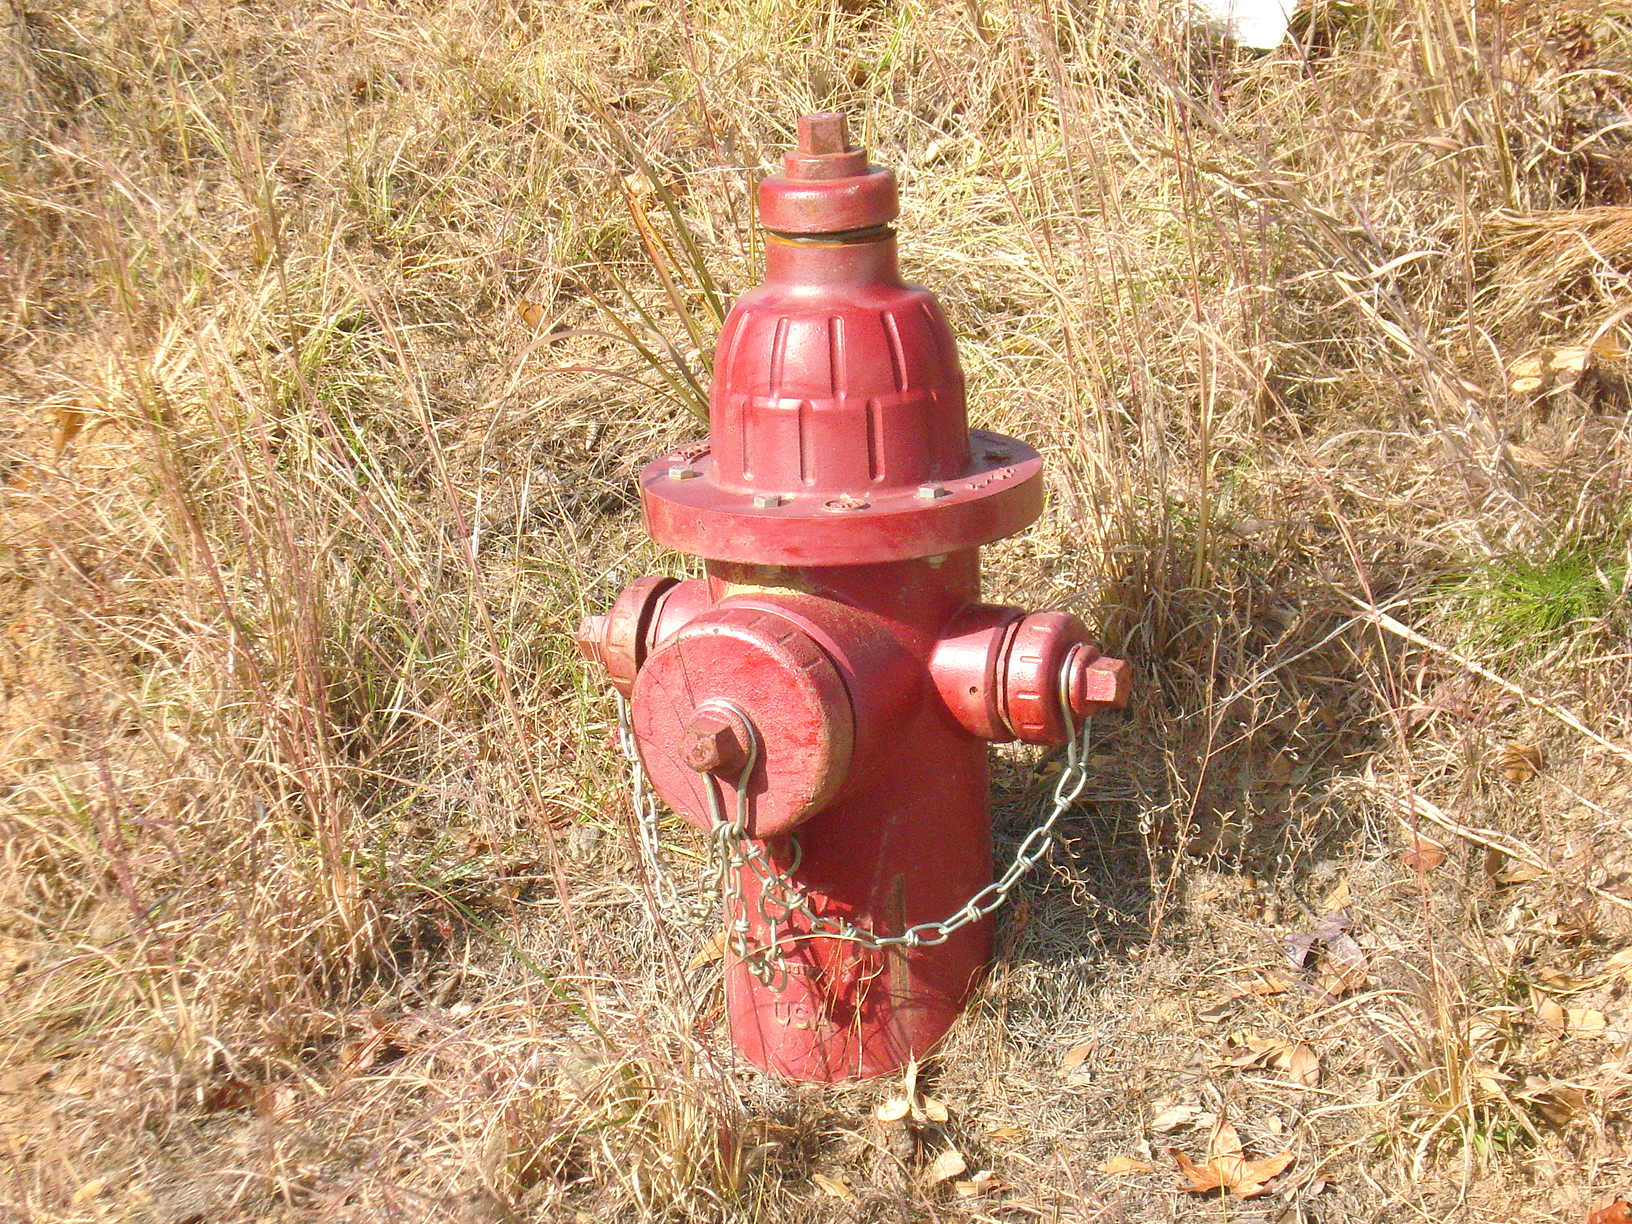 one of three fire hydrants. All properties have water service